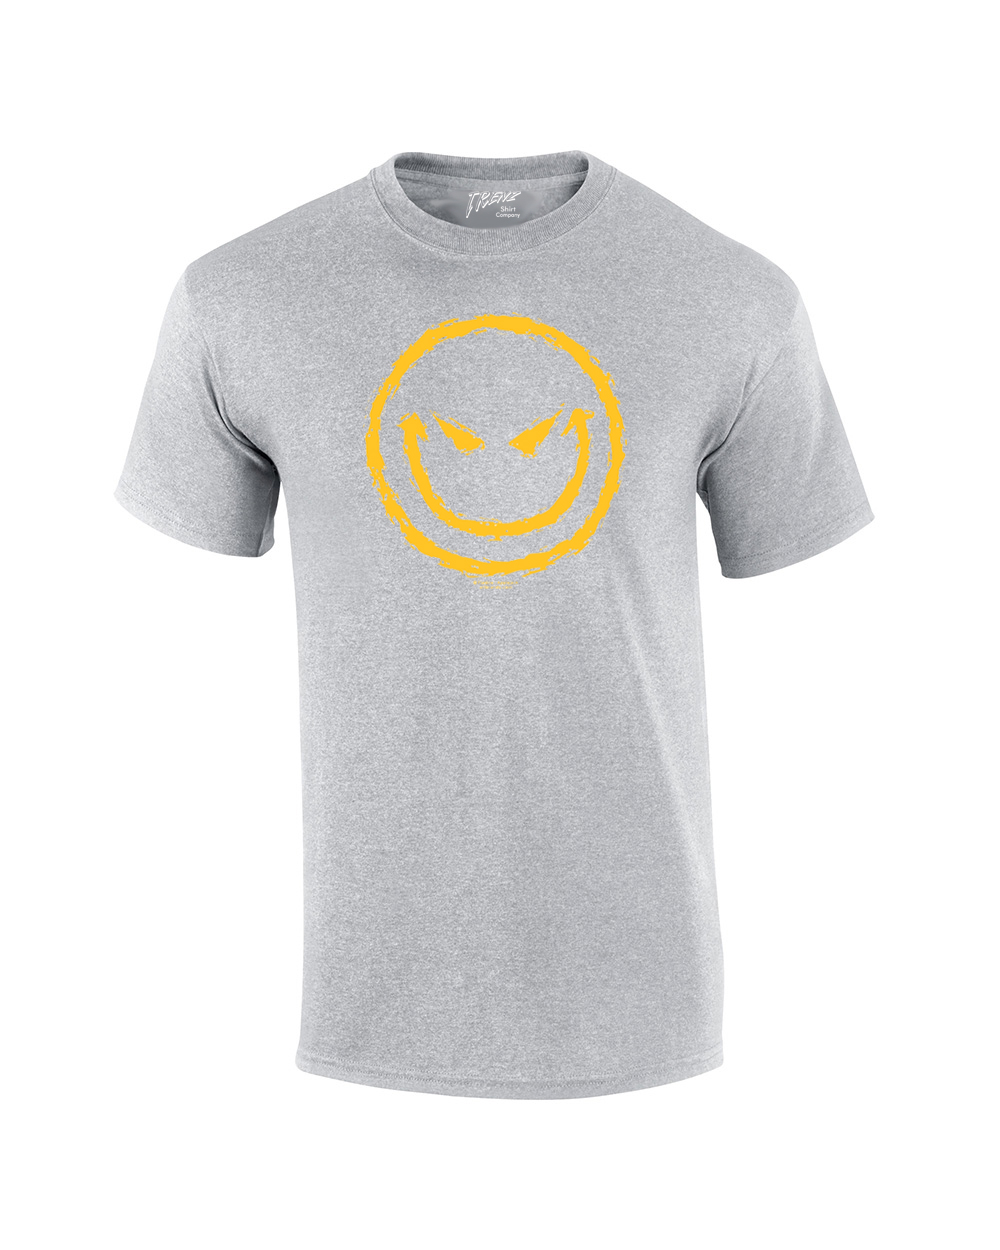 evil smiley face t shirt ebay. Black Bedroom Furniture Sets. Home Design Ideas